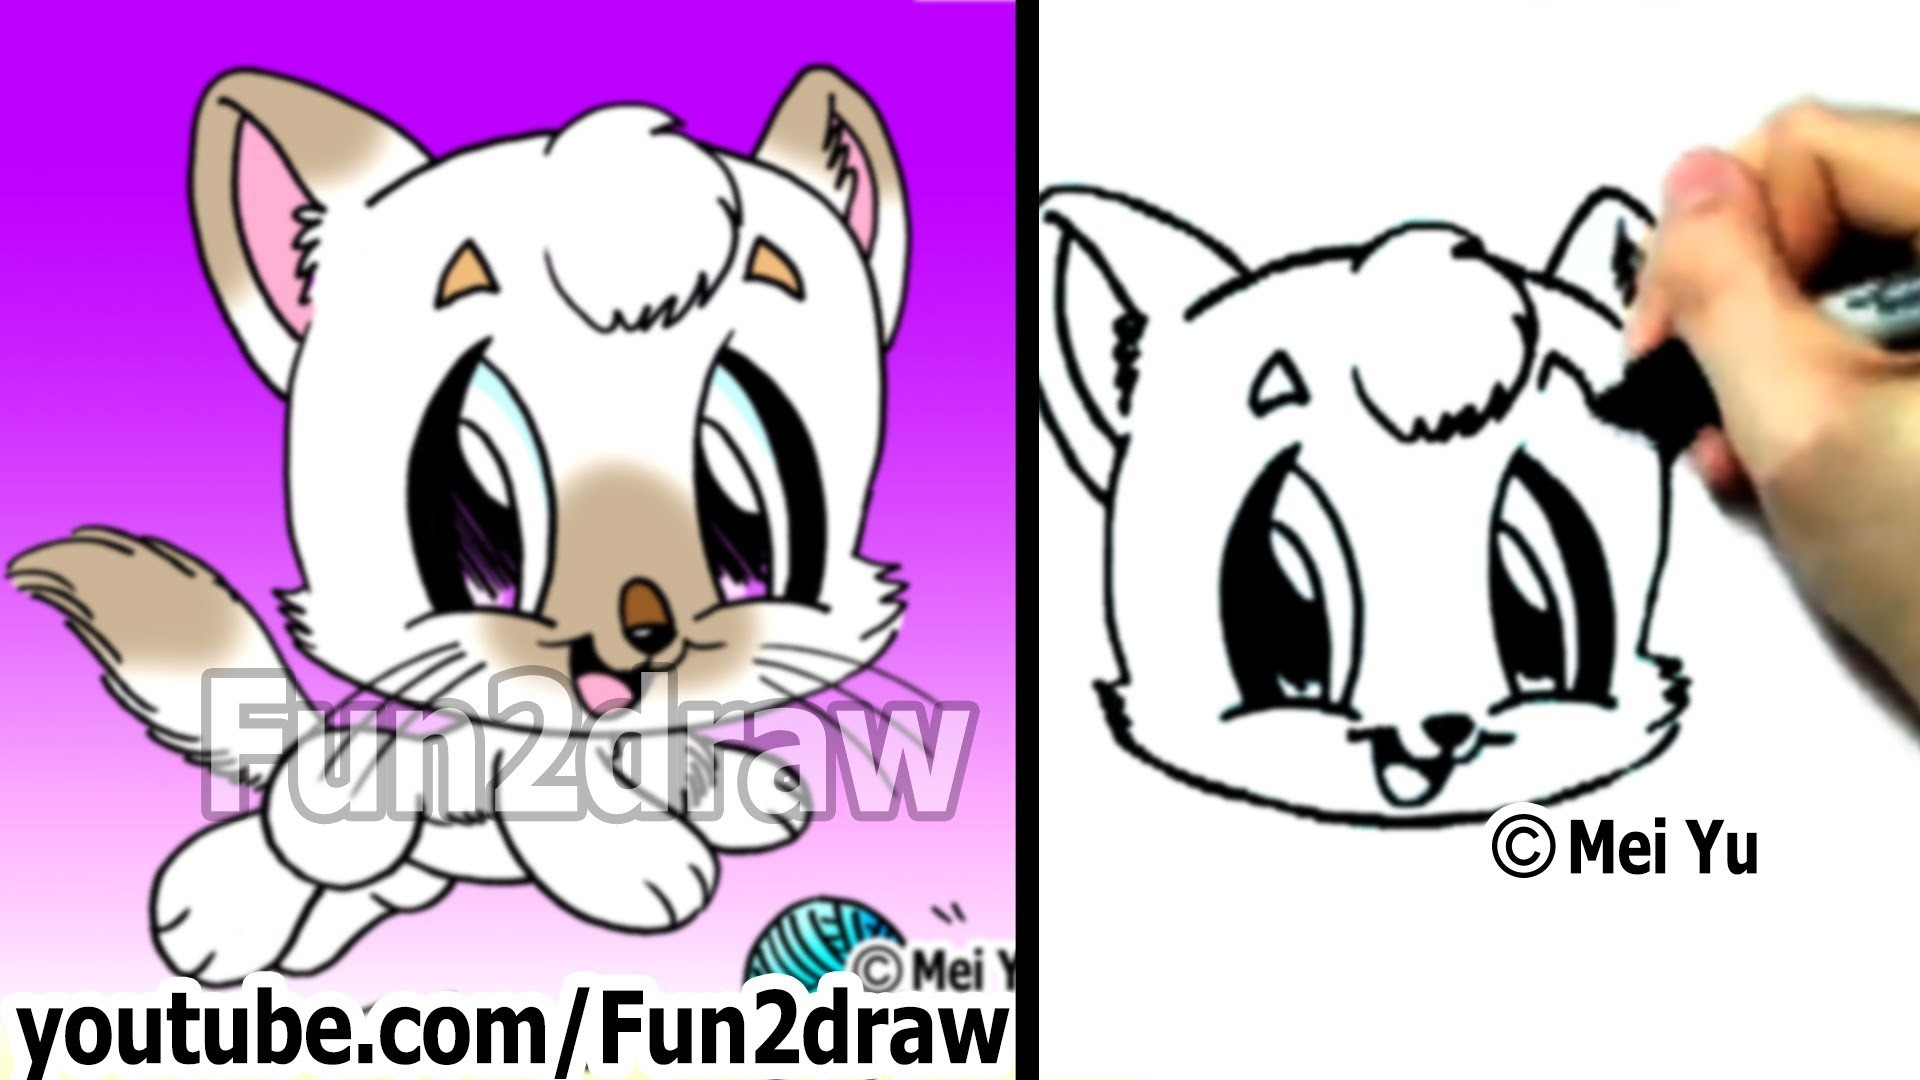 How to Draw a Cat - Learn to Draw - Cute Drawings - Fun2draw